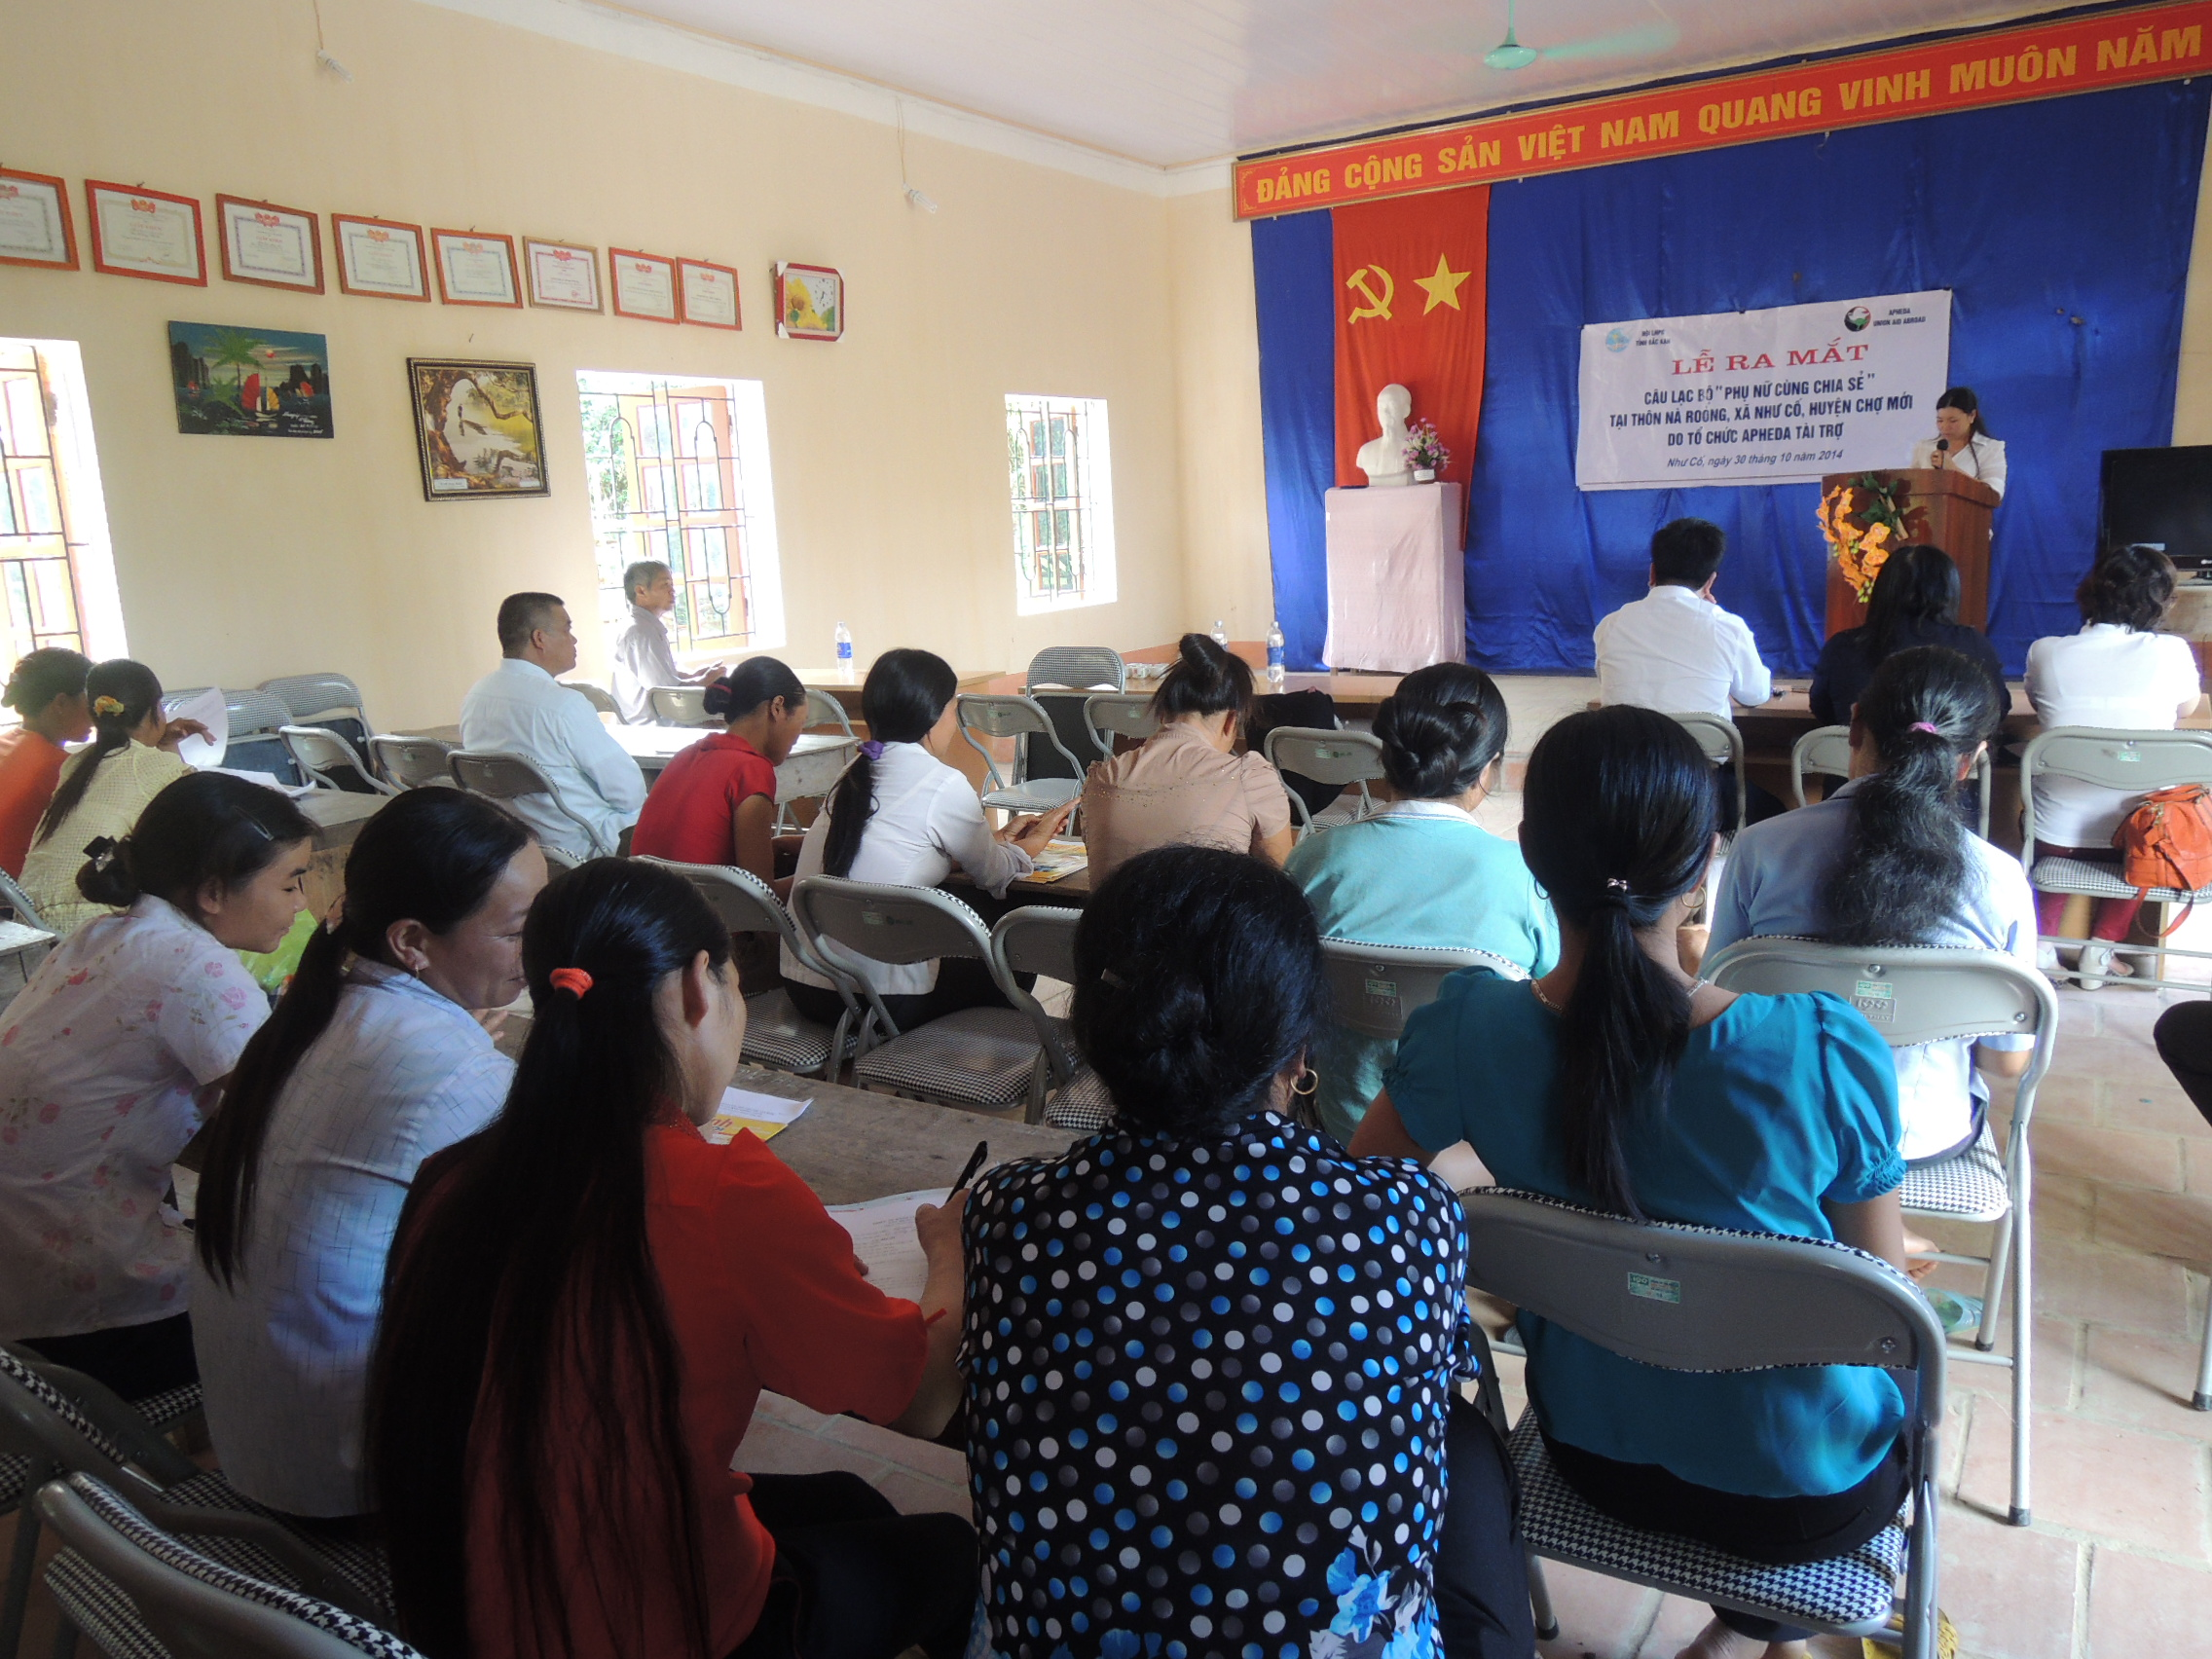 APHEDA has been working with the Women's Union in Bac Kan Province on reducing the incidence of domestic violence.